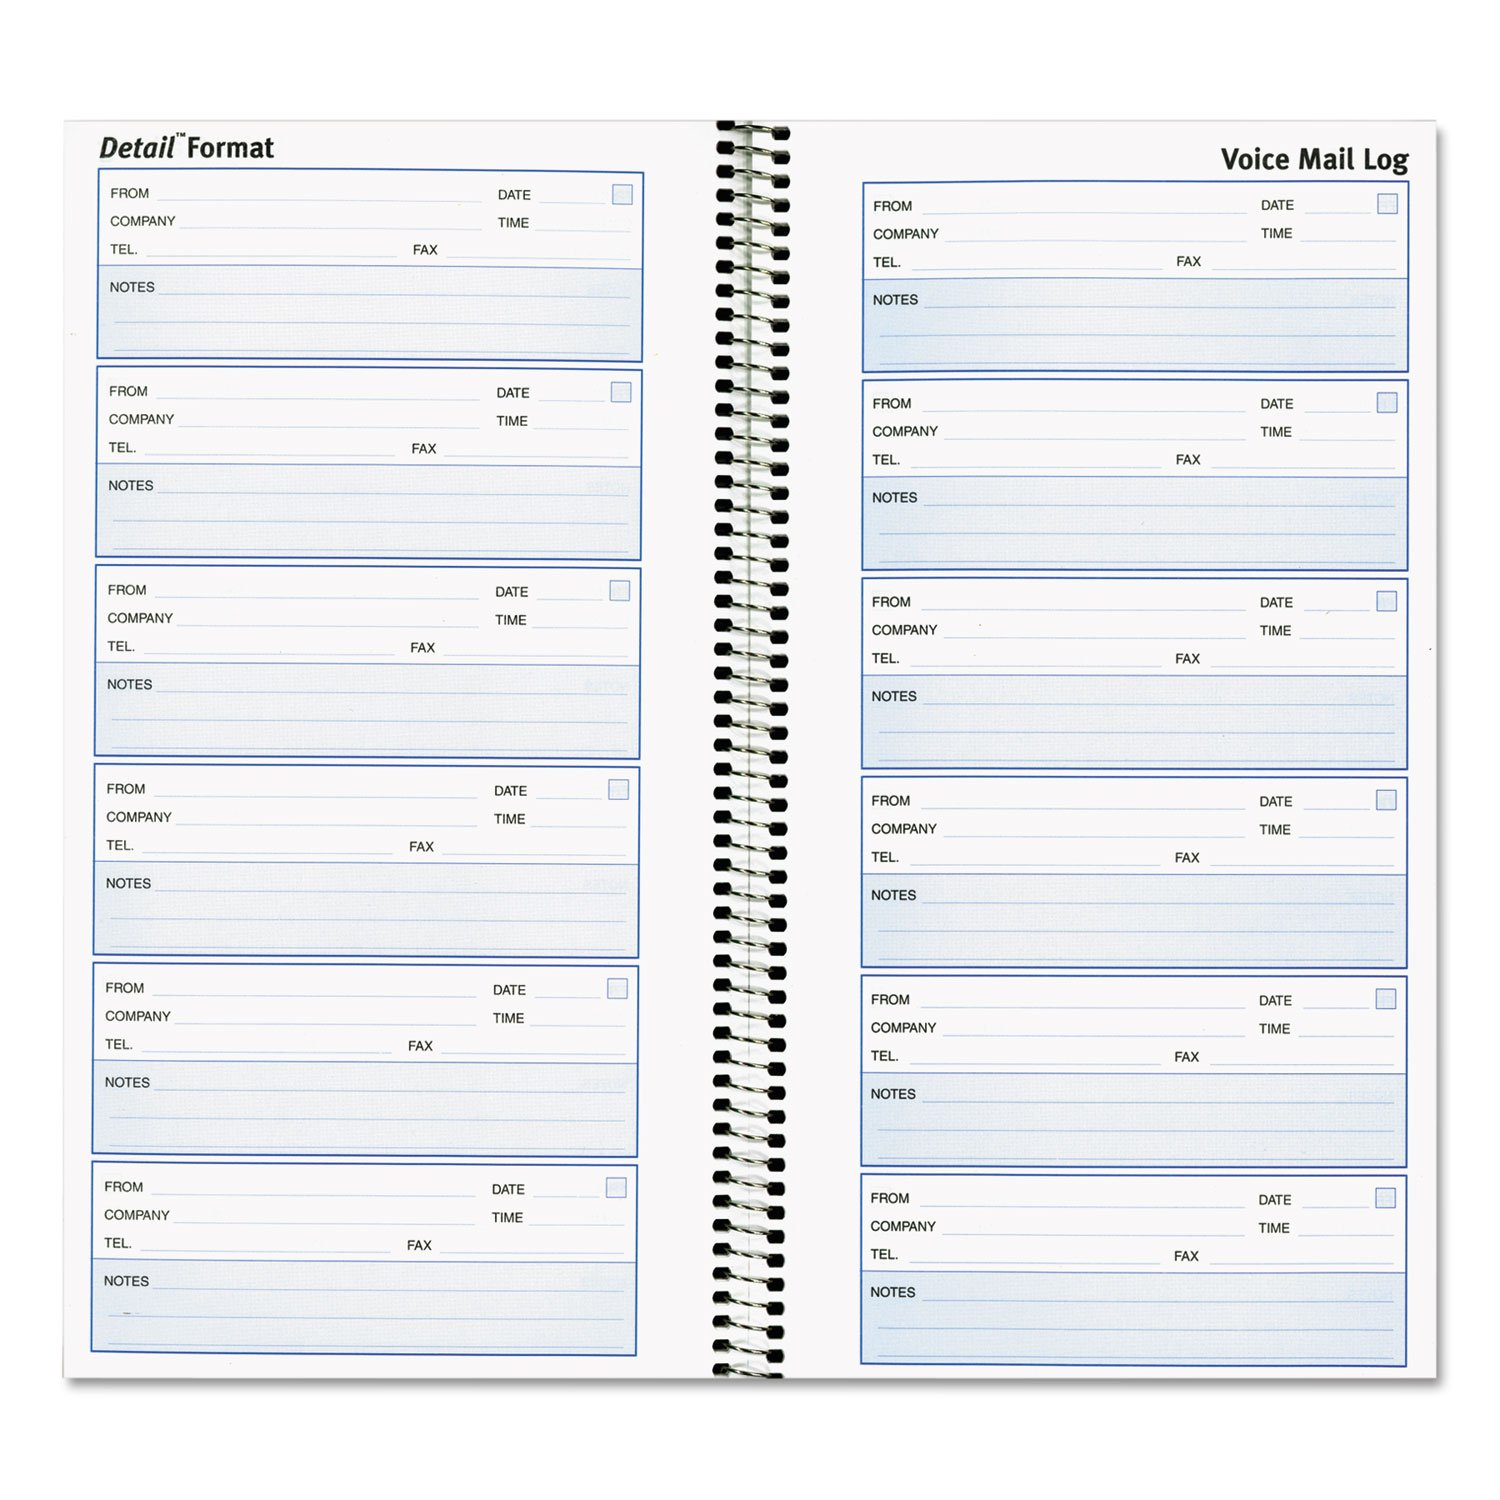 Rediform 51113 Voice Mail Wirebound Log Books 5 5/8 x 10 5/8 600 Sets/Book by Rediform